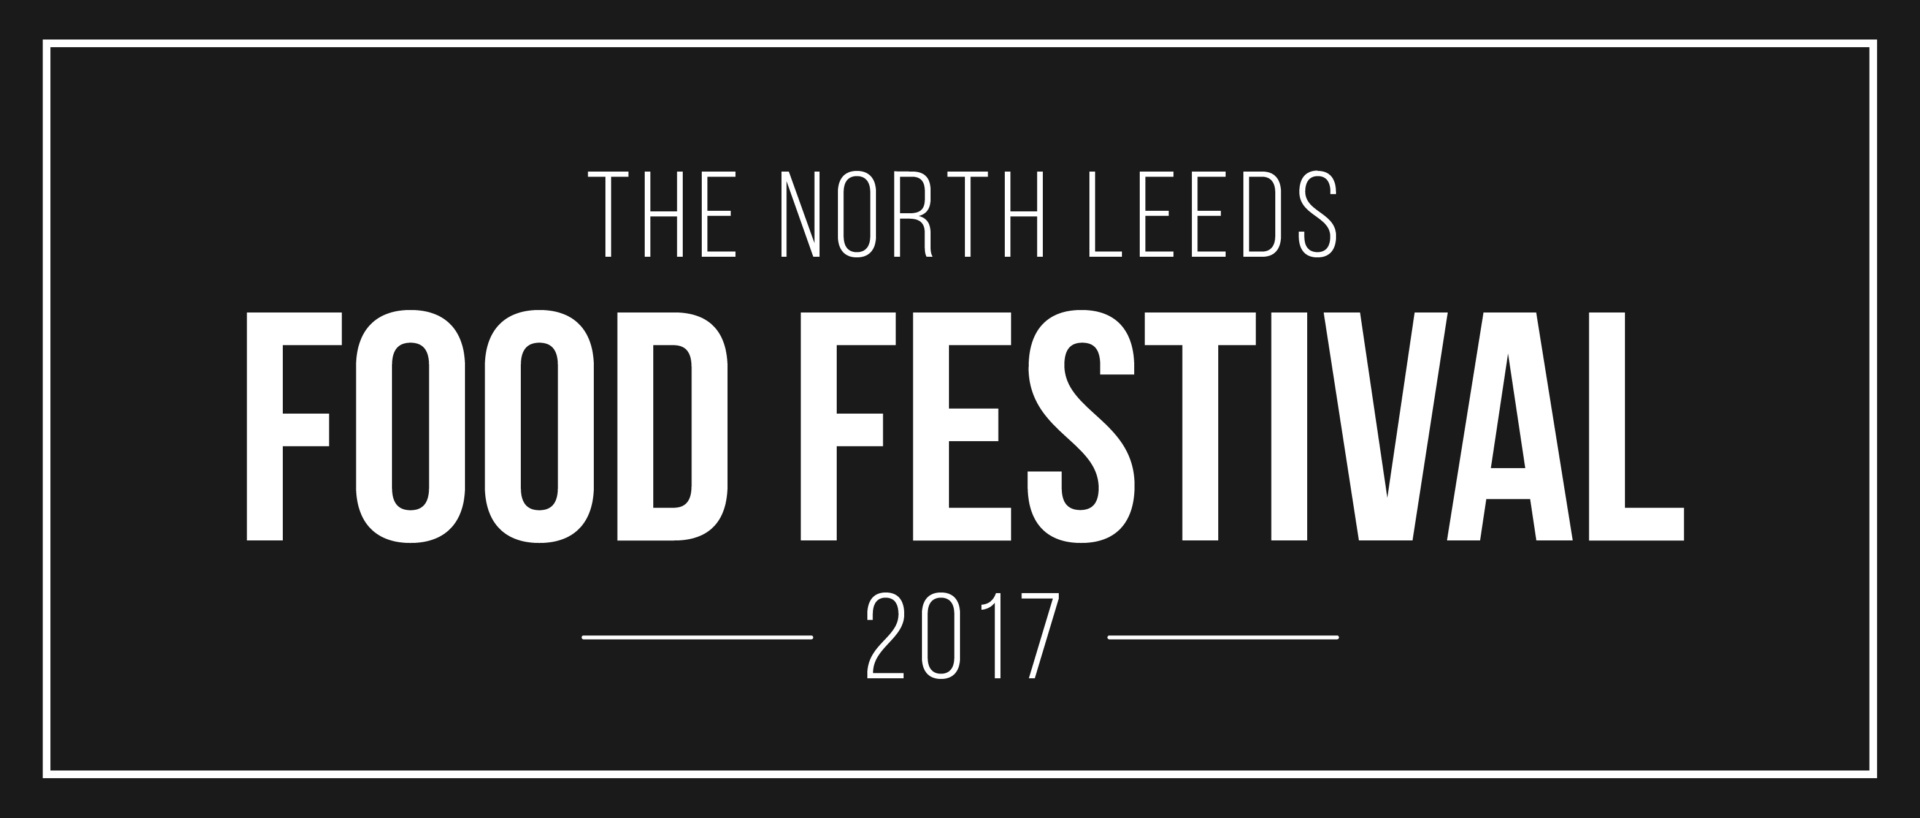 North Leeds Food Festival